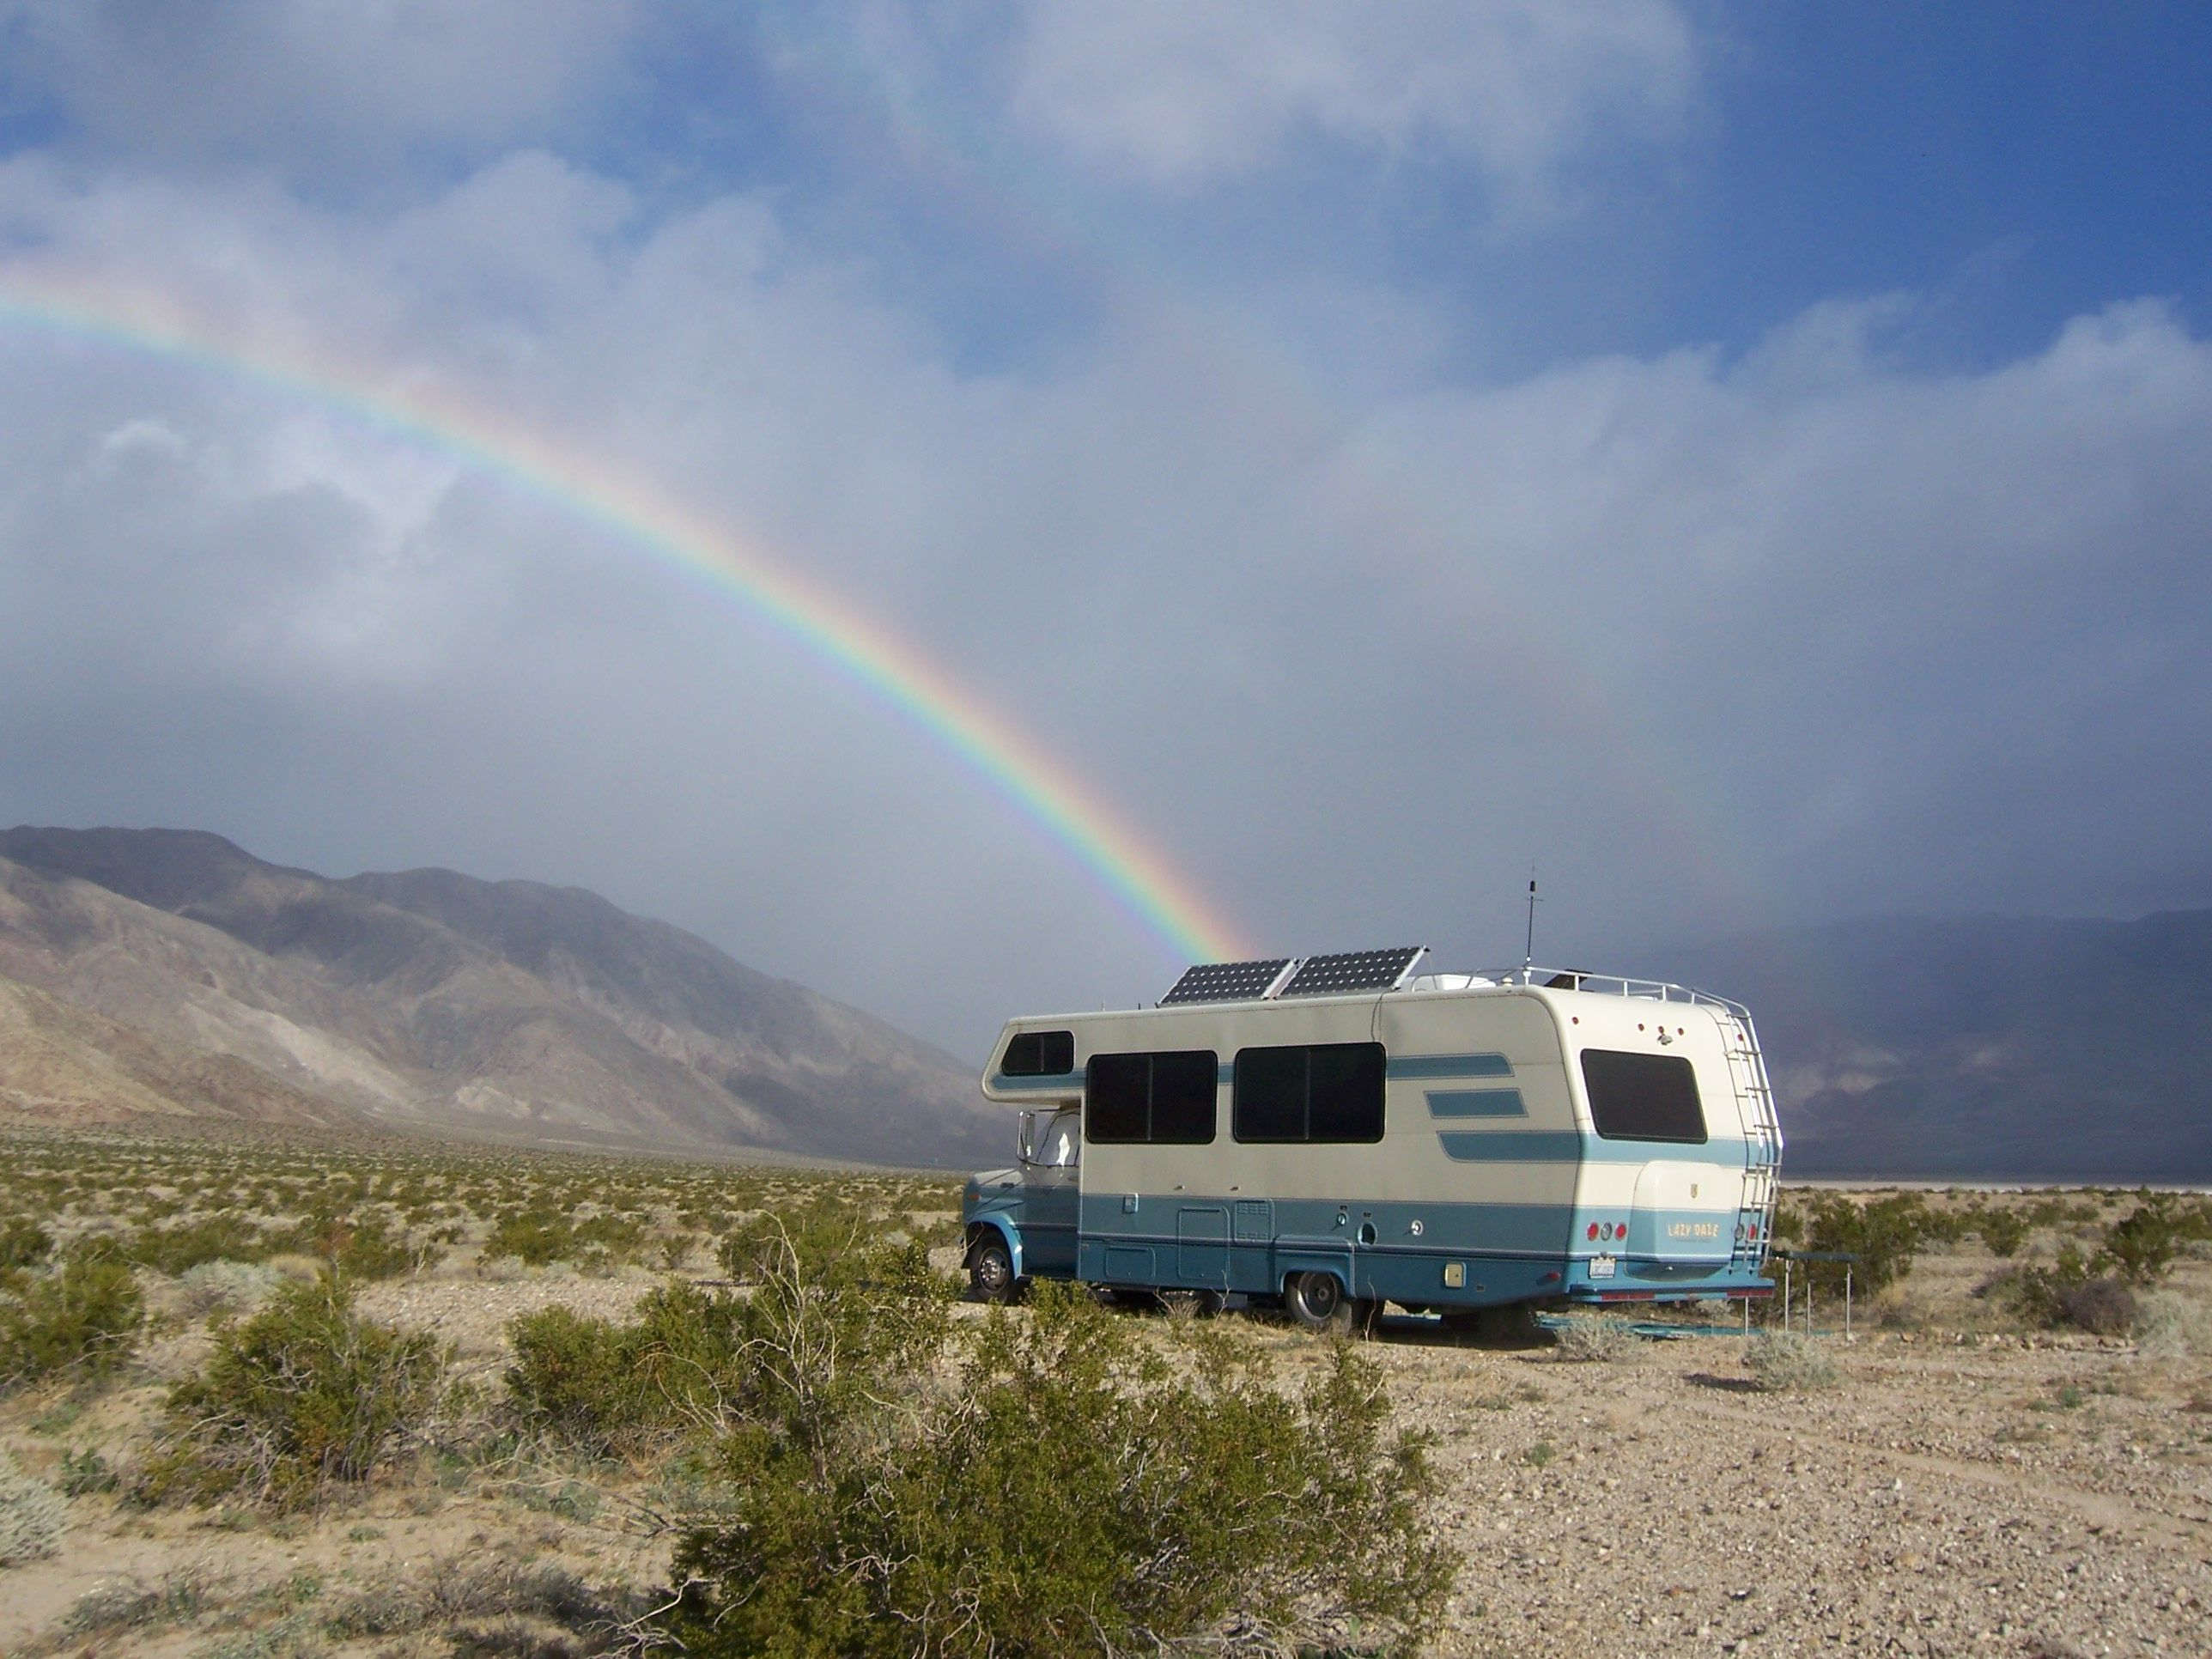 A pot of RV gold at the end of the rainbow #rainbow | House ... Rainbow Mobile Homes on school bus mobile home, breeze mobile home, tiffany mobile home, hippie mobile home, galaxy mobile home, snow mobile home, desert mobile home, bad mobile home, run down mobile home, purple mobile home,